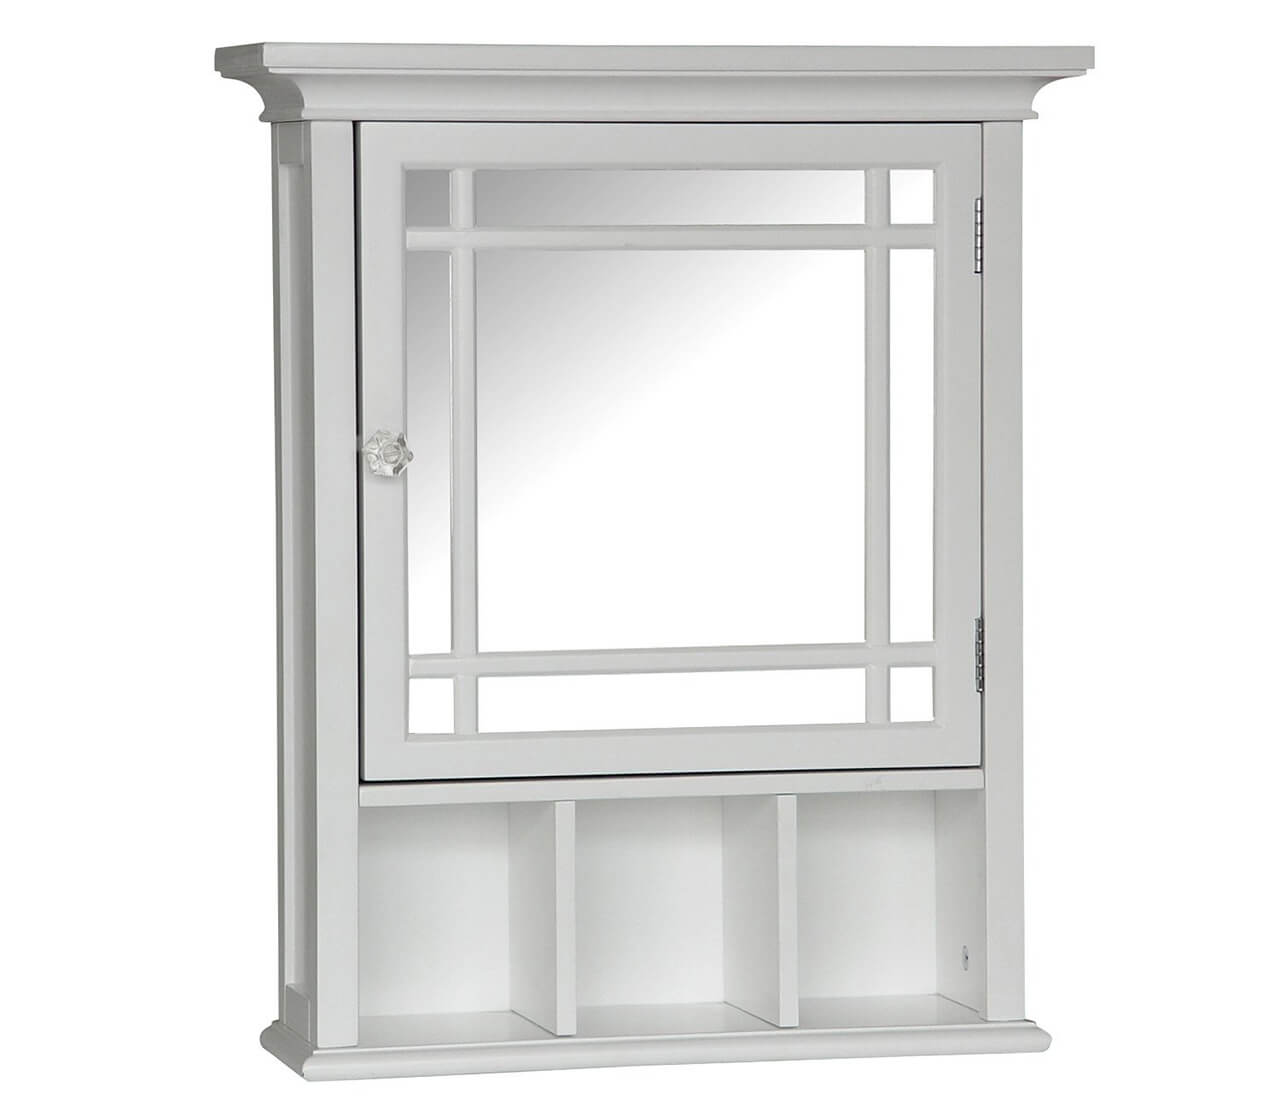 Elegant Home Fashions Madison Avenue Collection Shelved Wall Cabinet with Glass-Paneled Doors White